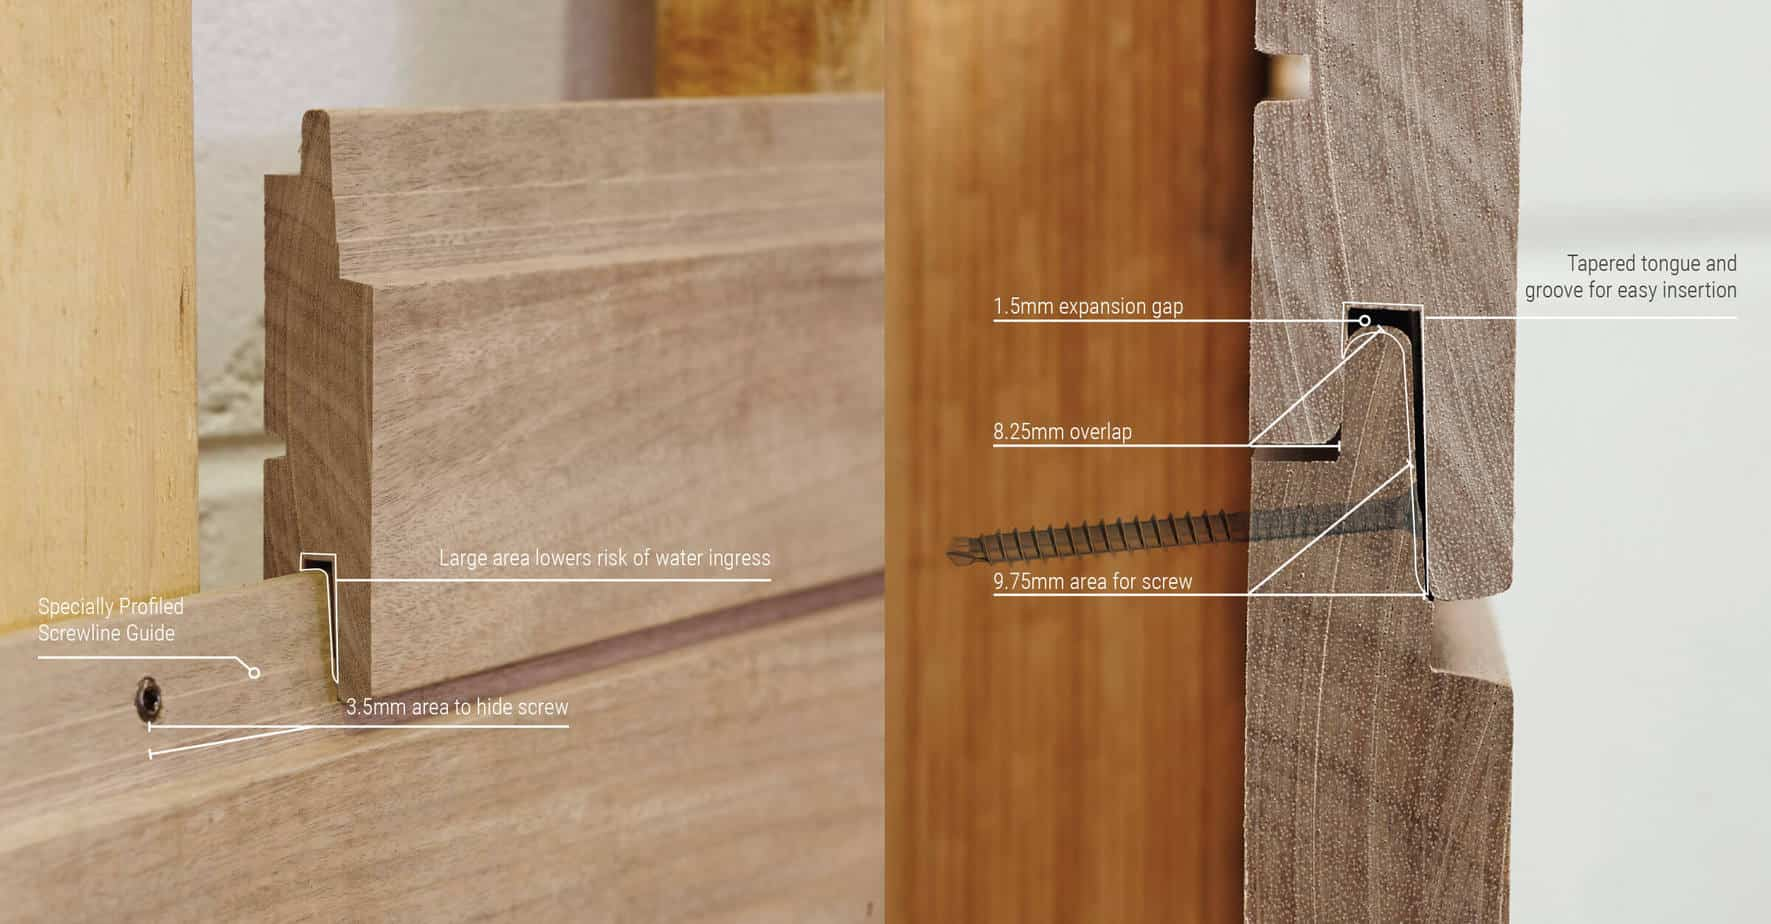 tongue-and-groove-cladding-how-it-works-sculptform Aus